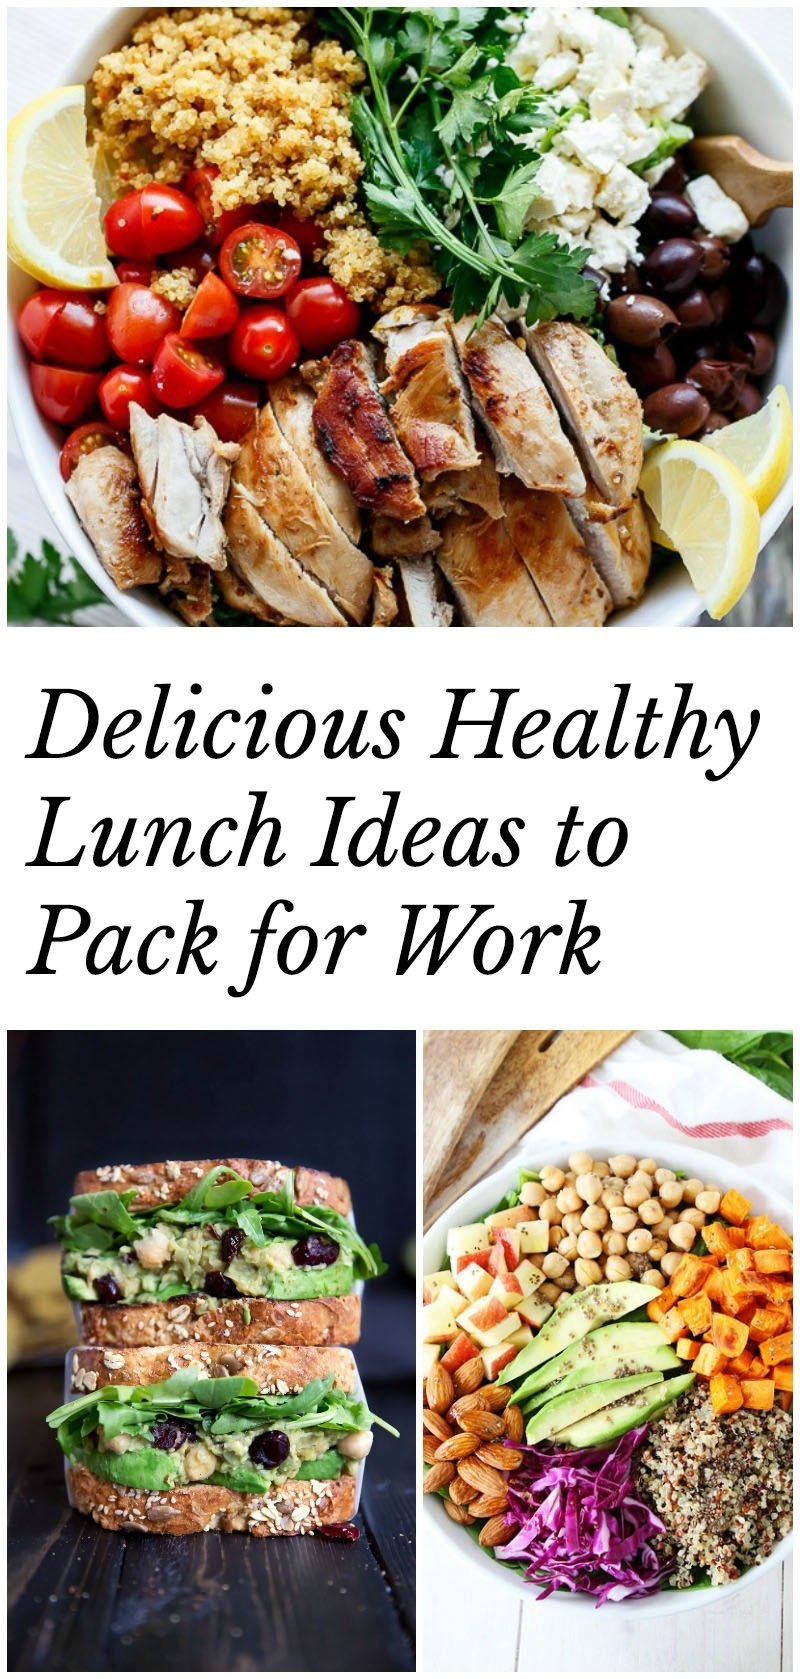 10 Fabulous Easy And Healthy Lunch Ideas healthy lunch ideas to pack for work 40 recipes 2 2020